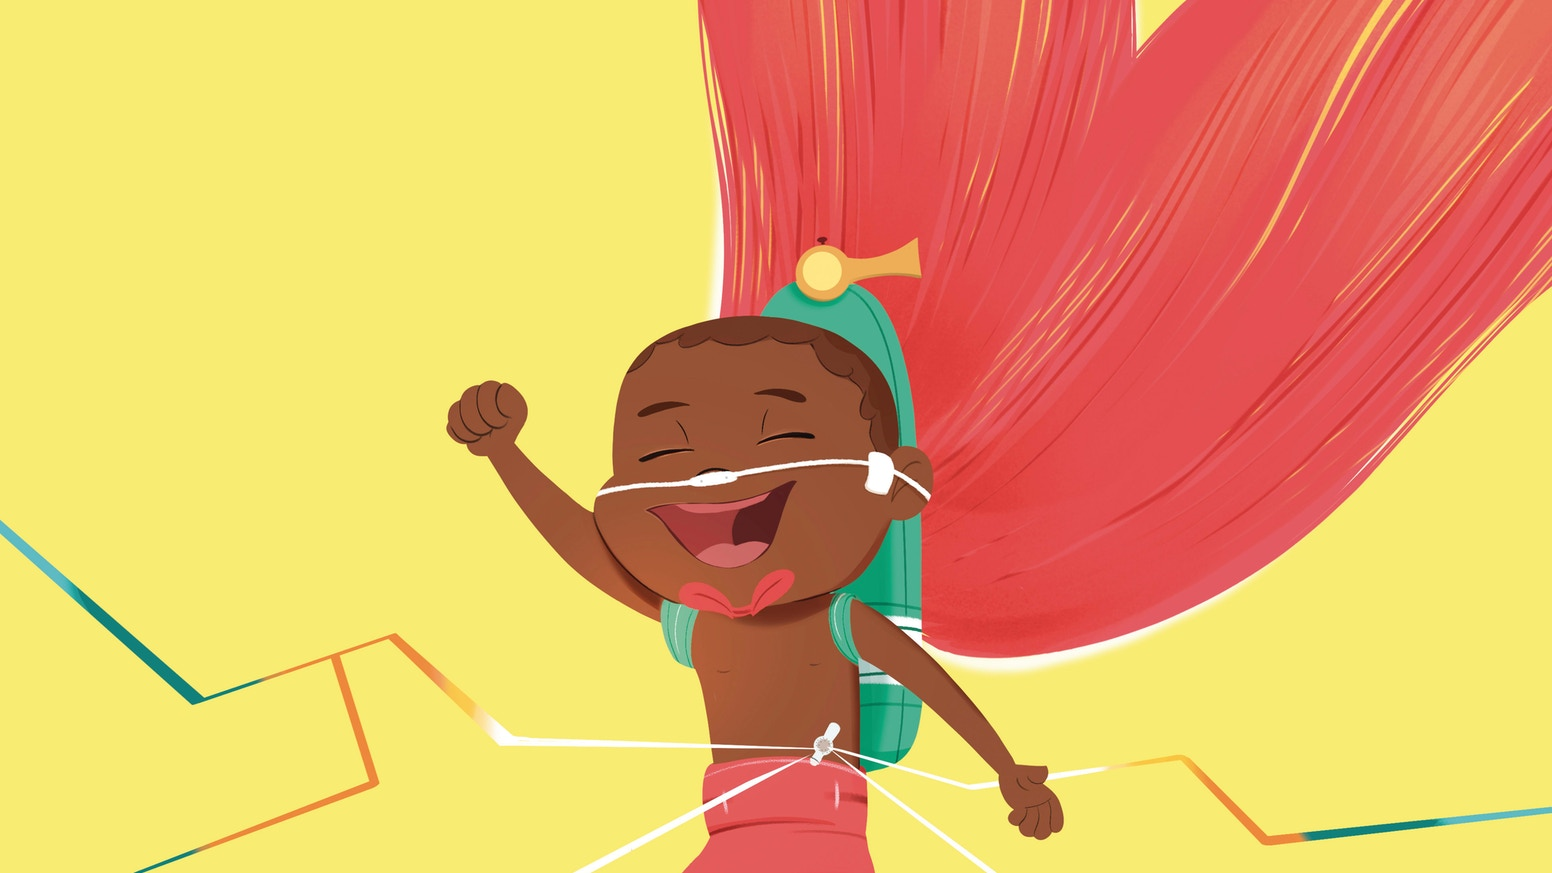 A children's book giving visibility and hopeful inspiration to preemie babies, their families, and their fight.